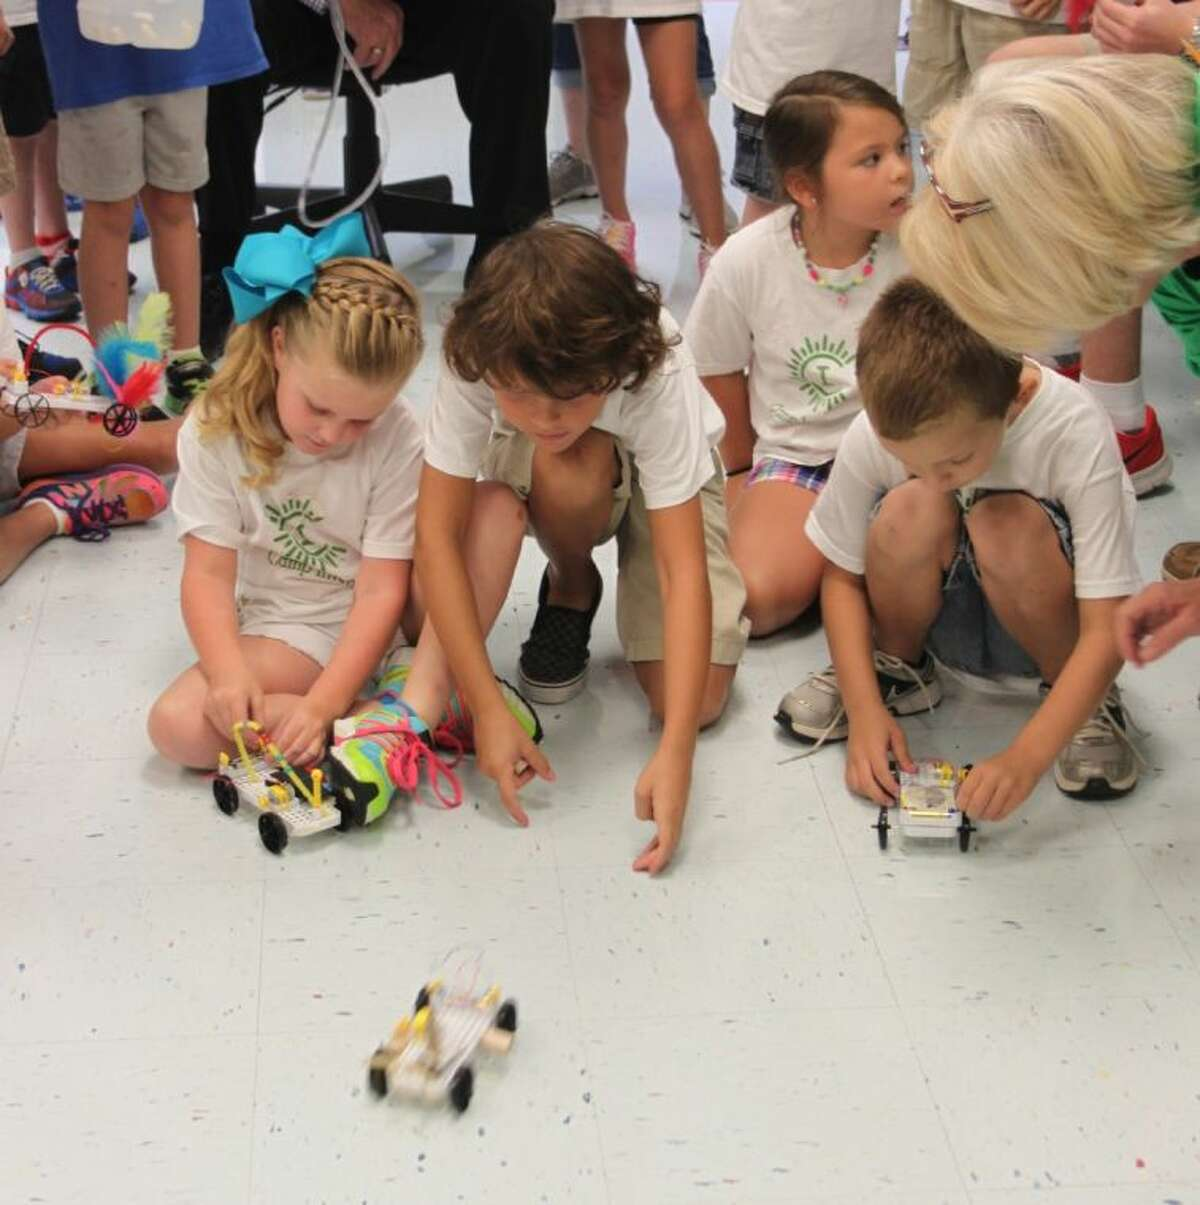 Emily Hebert, Parker Balch, Summer Balch and Trey Lott race the battery-powered cars they created at Camp Invention, held at San Jacinto Elementary in Liberty during the week of July 7-11. They are being assisted by Jo Ann Gilliland.